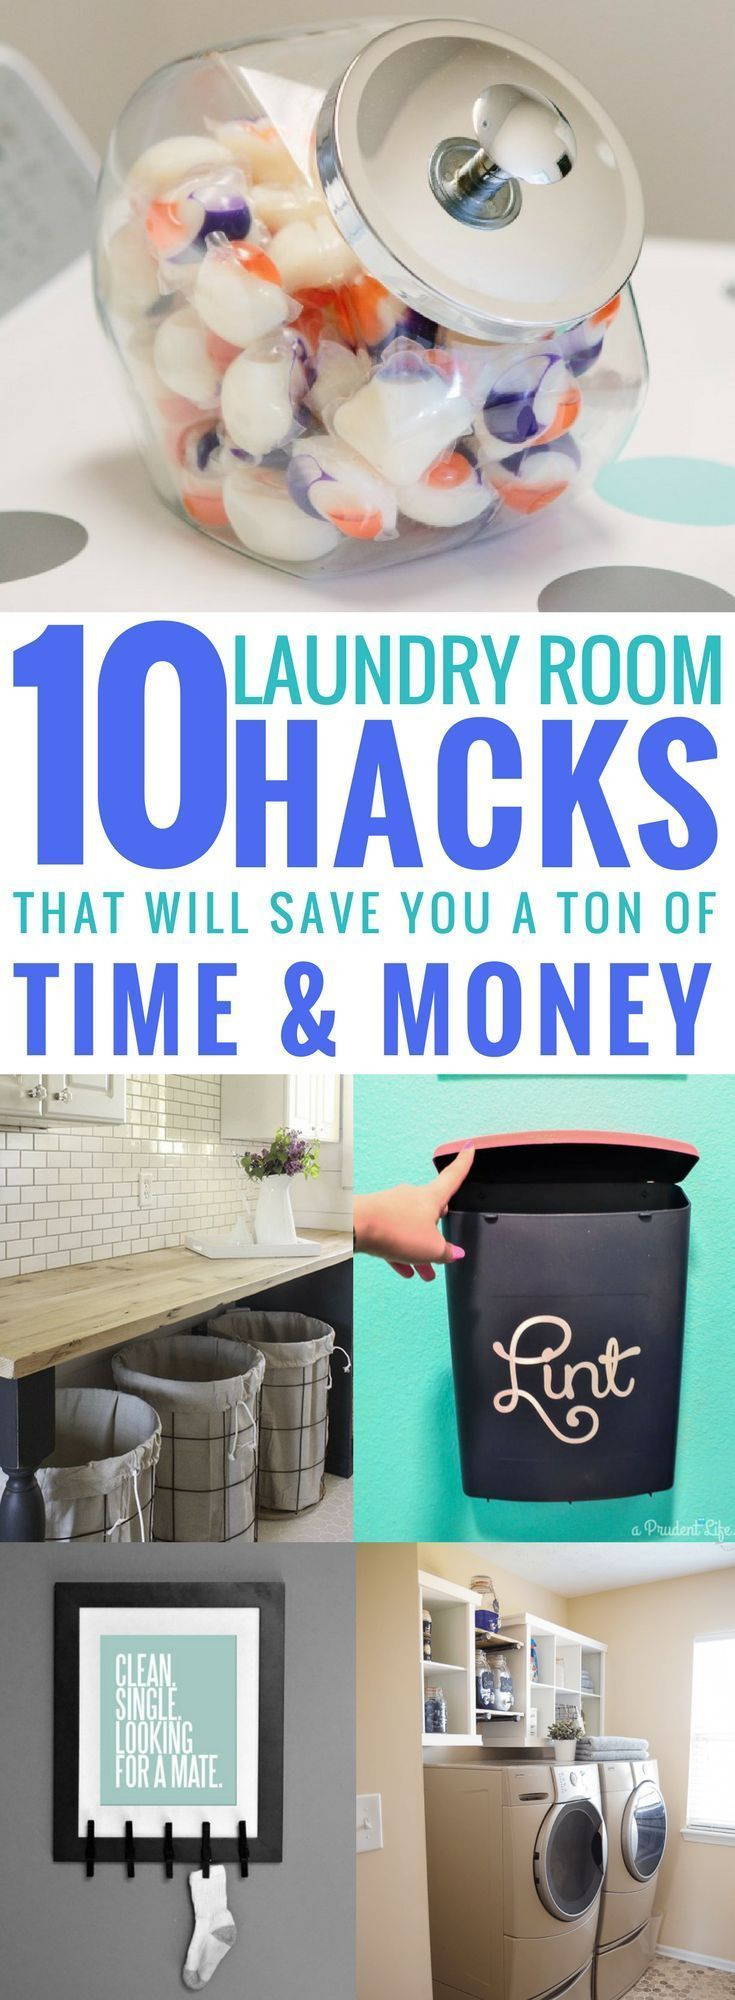 20 Laundry Room Ideas That Will Make Laundry Your New Favorite Chore